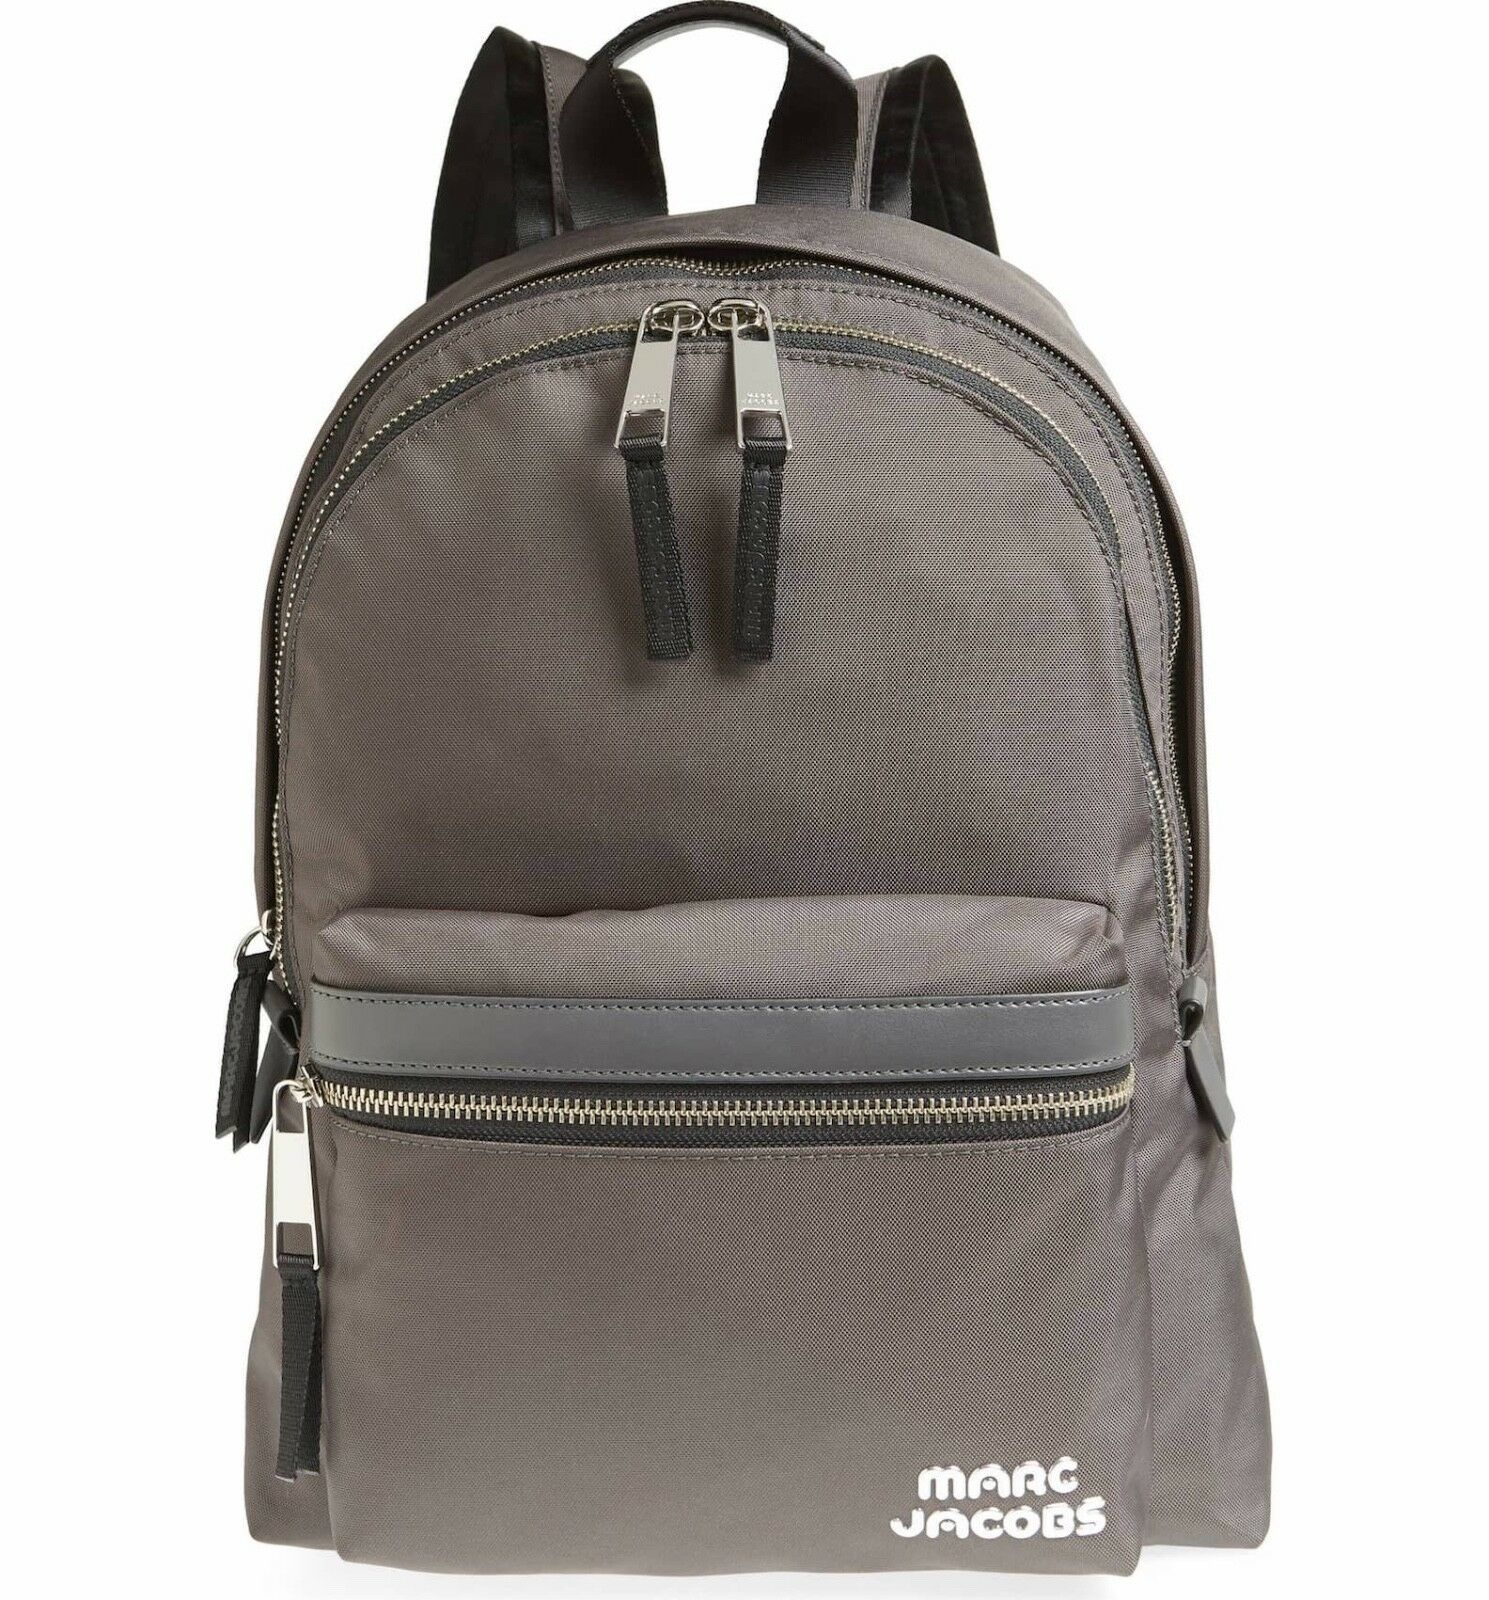 Primary image for Marc Jacobs Backpack Trek Pack Large Gray NEW